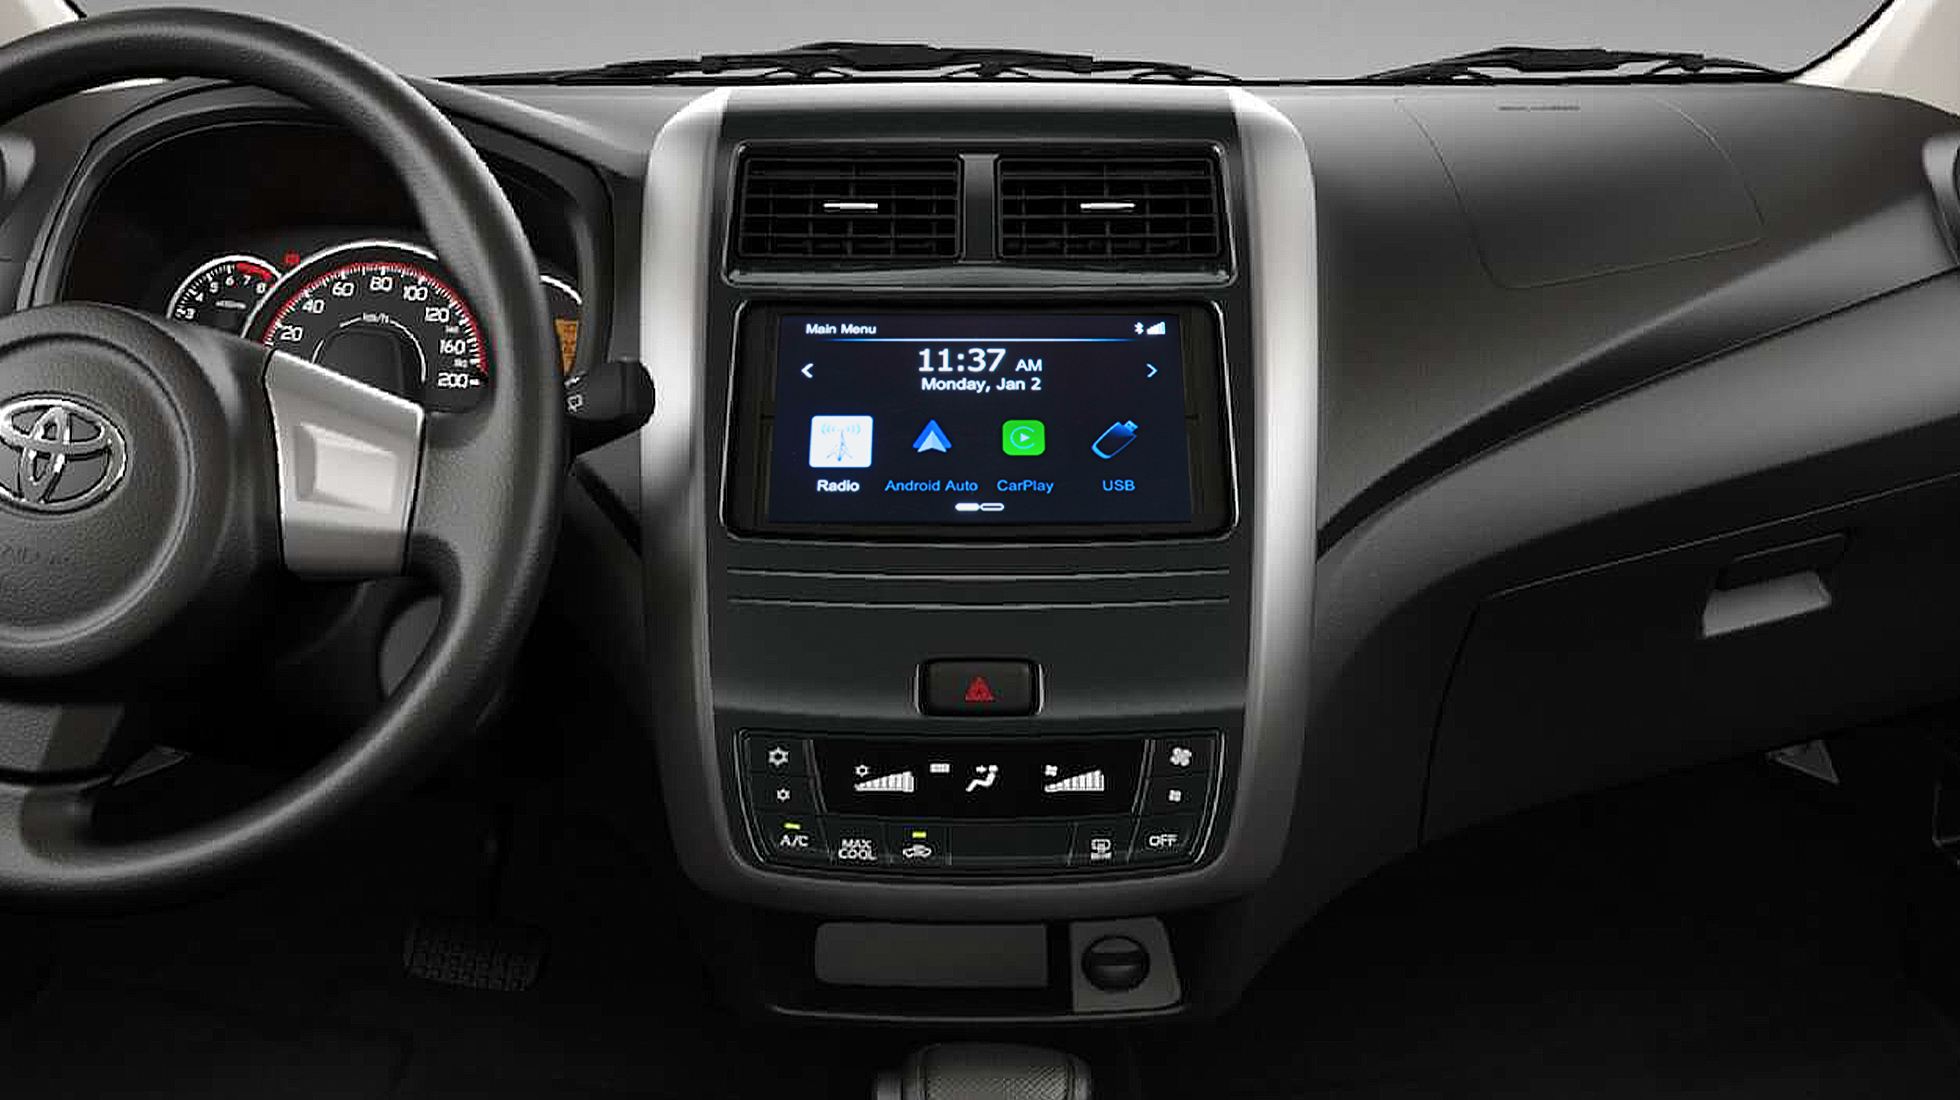 Linking Up to Apple CarPlay and Android Auto Is as Easy as It Gets